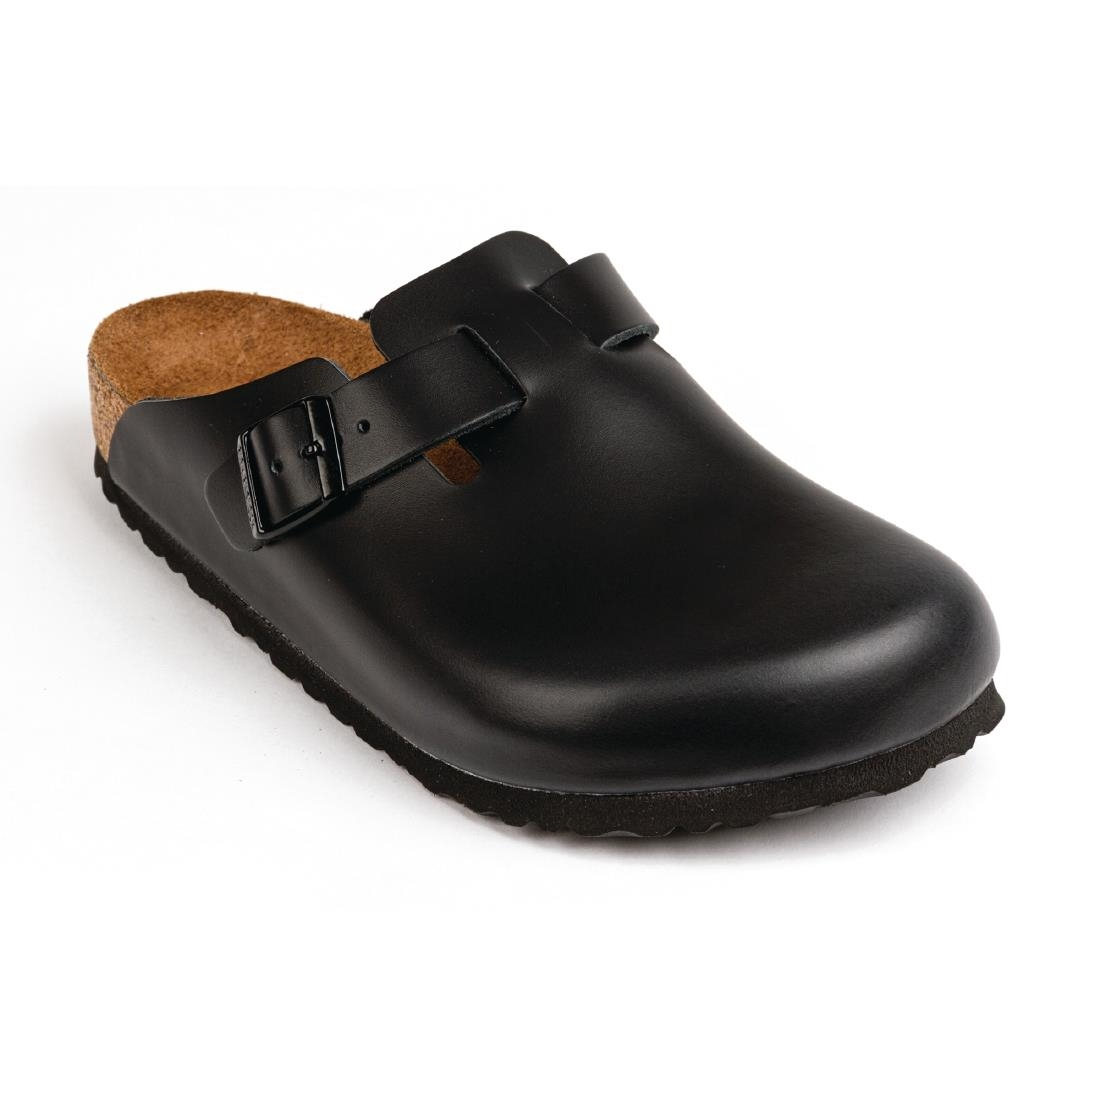 Image of Birkenstock Boston Clog Black 37